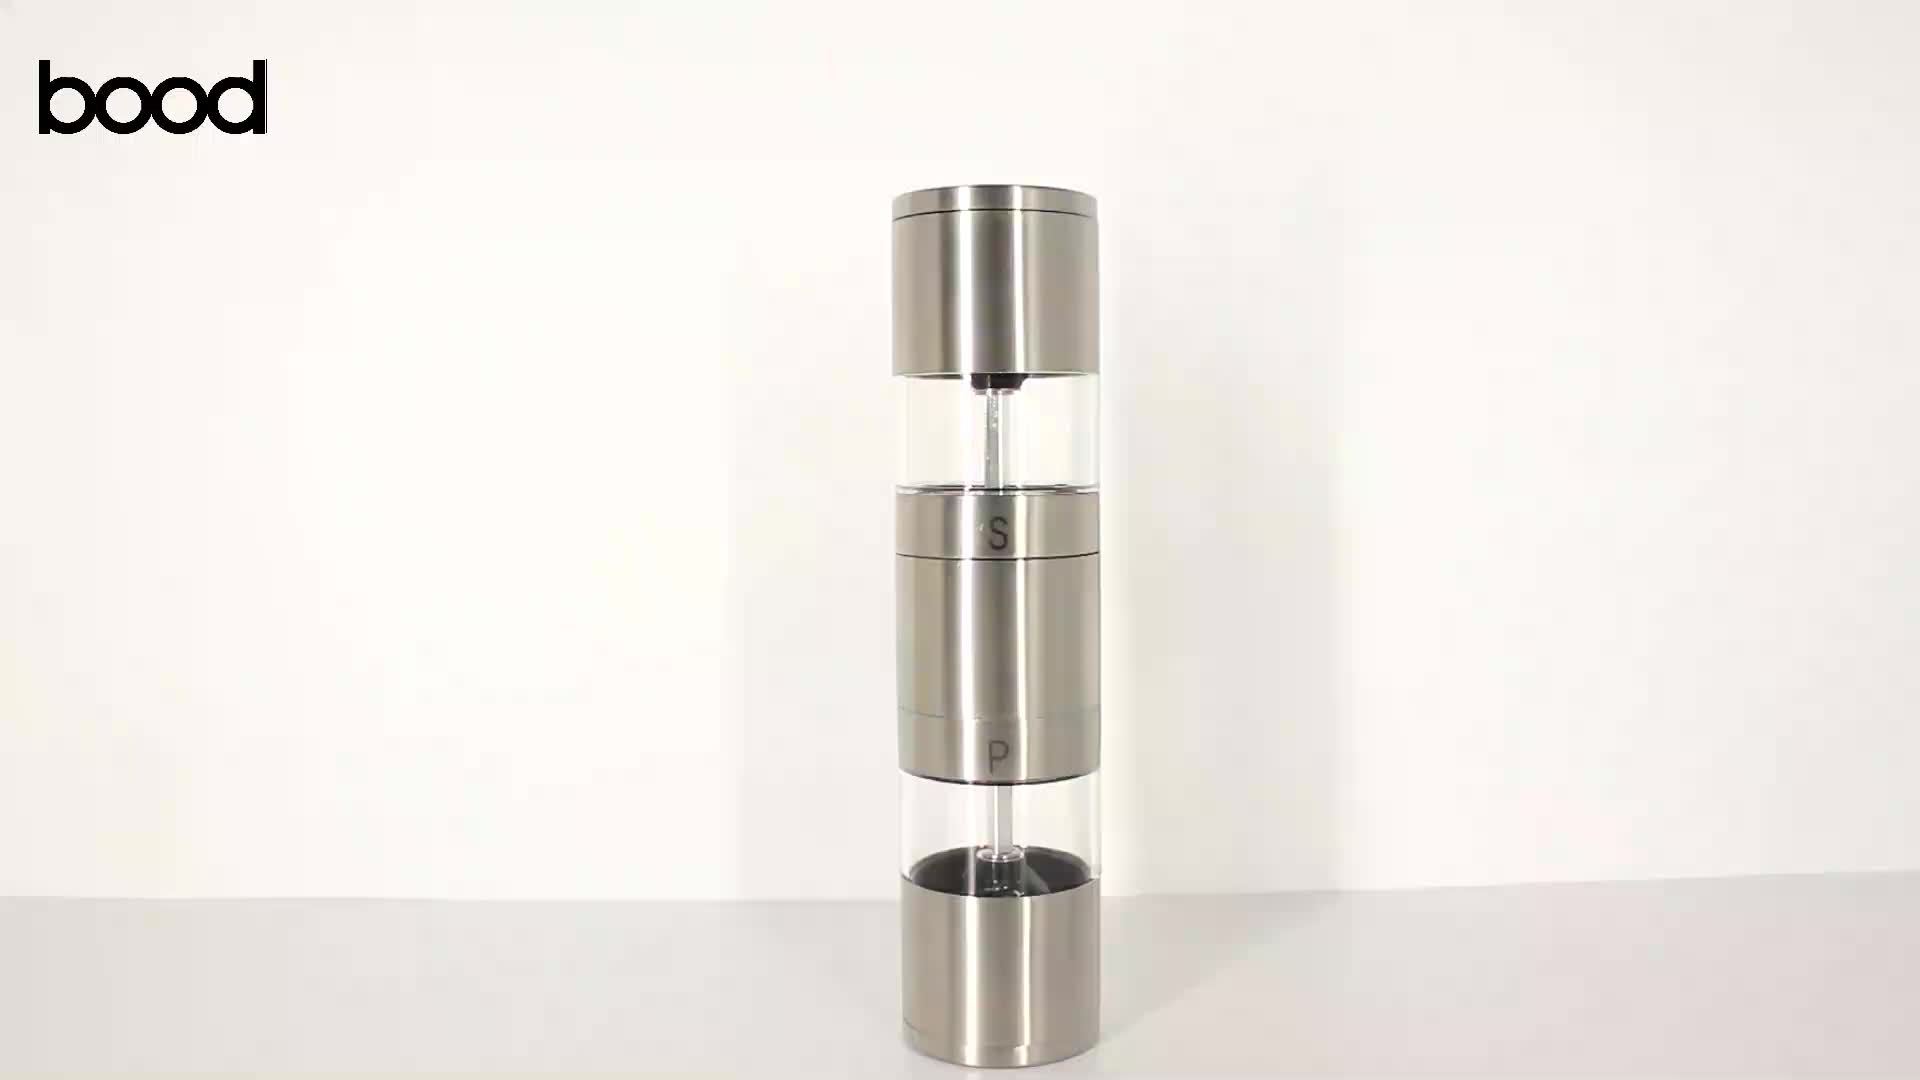 2 in 1 dual manual salt and pepper grinder with double ended design